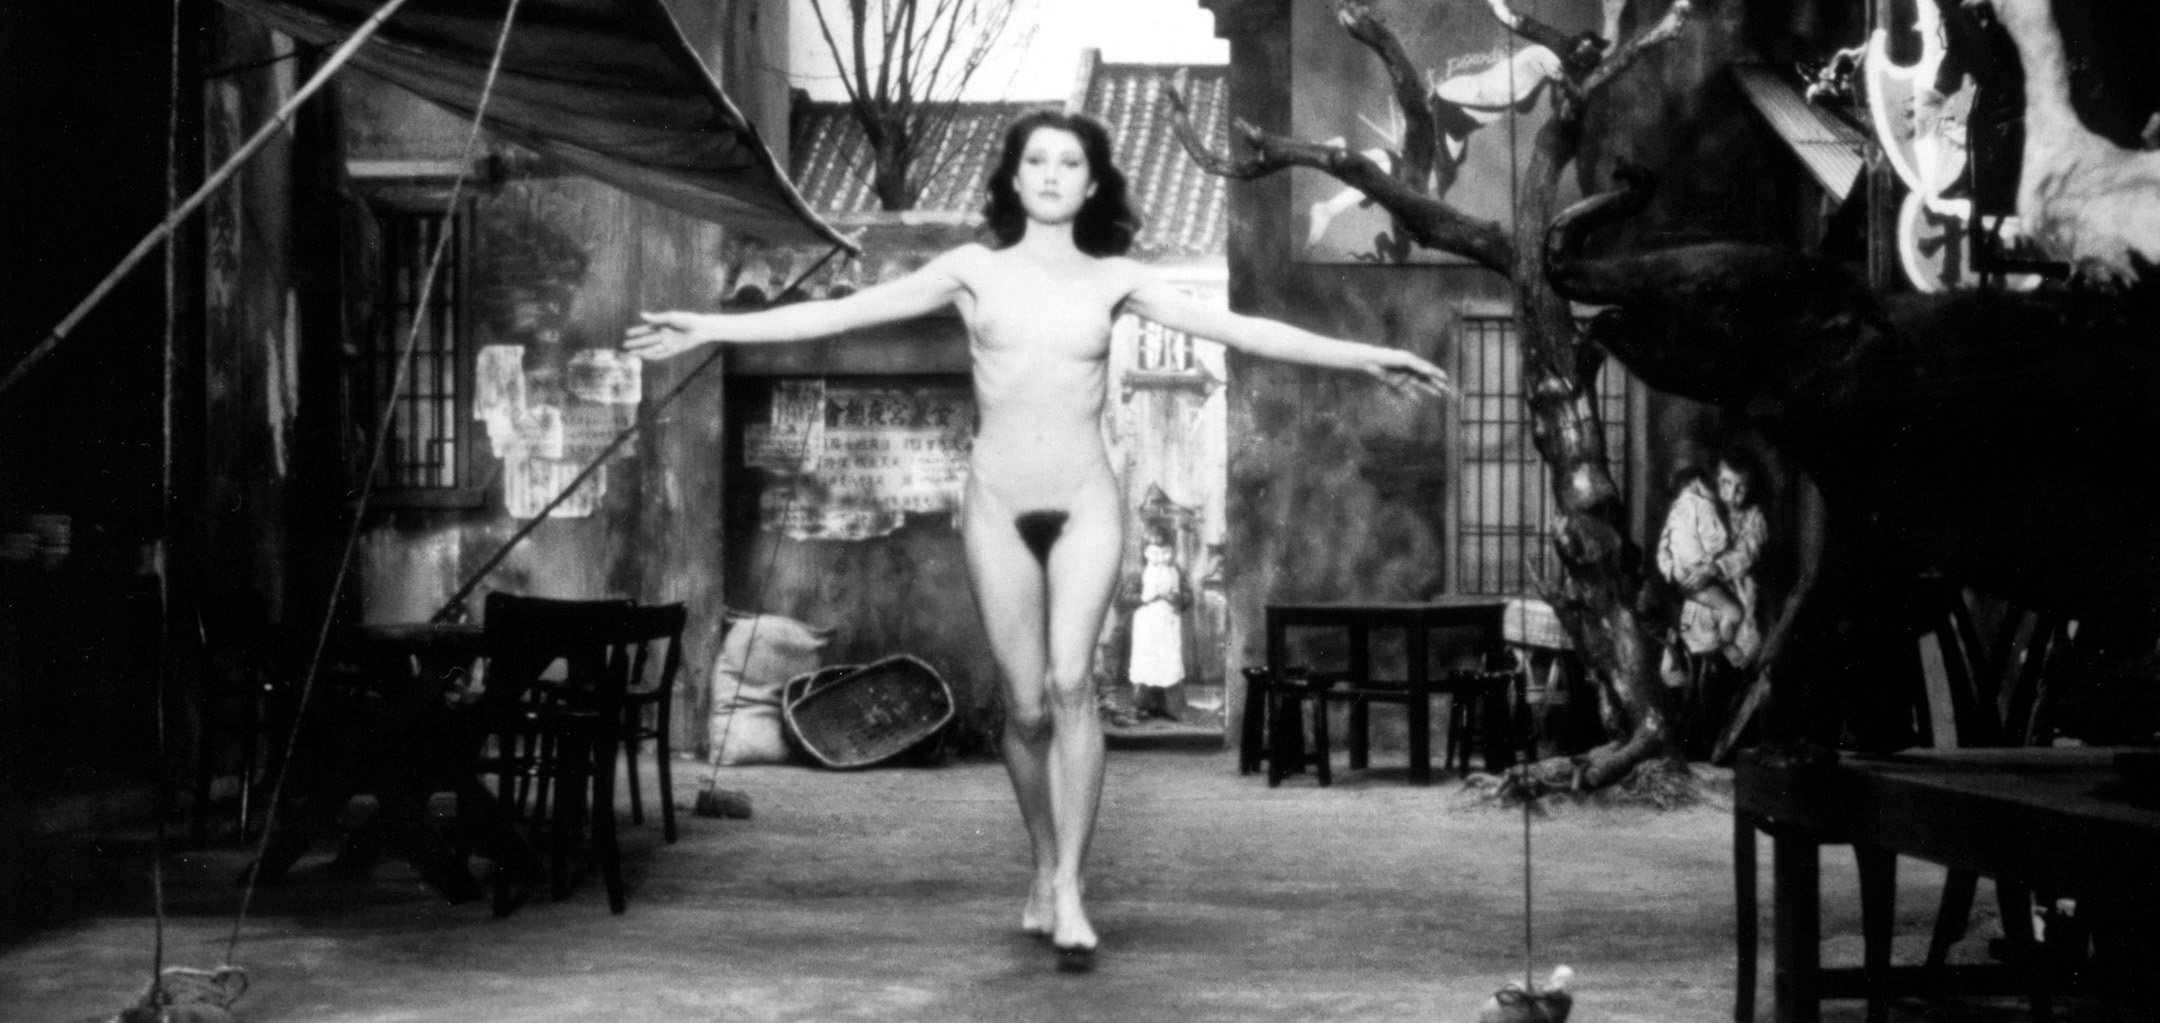 A nude woman with arms outstretched in a still from 'The Fruits of Passion' (1981)